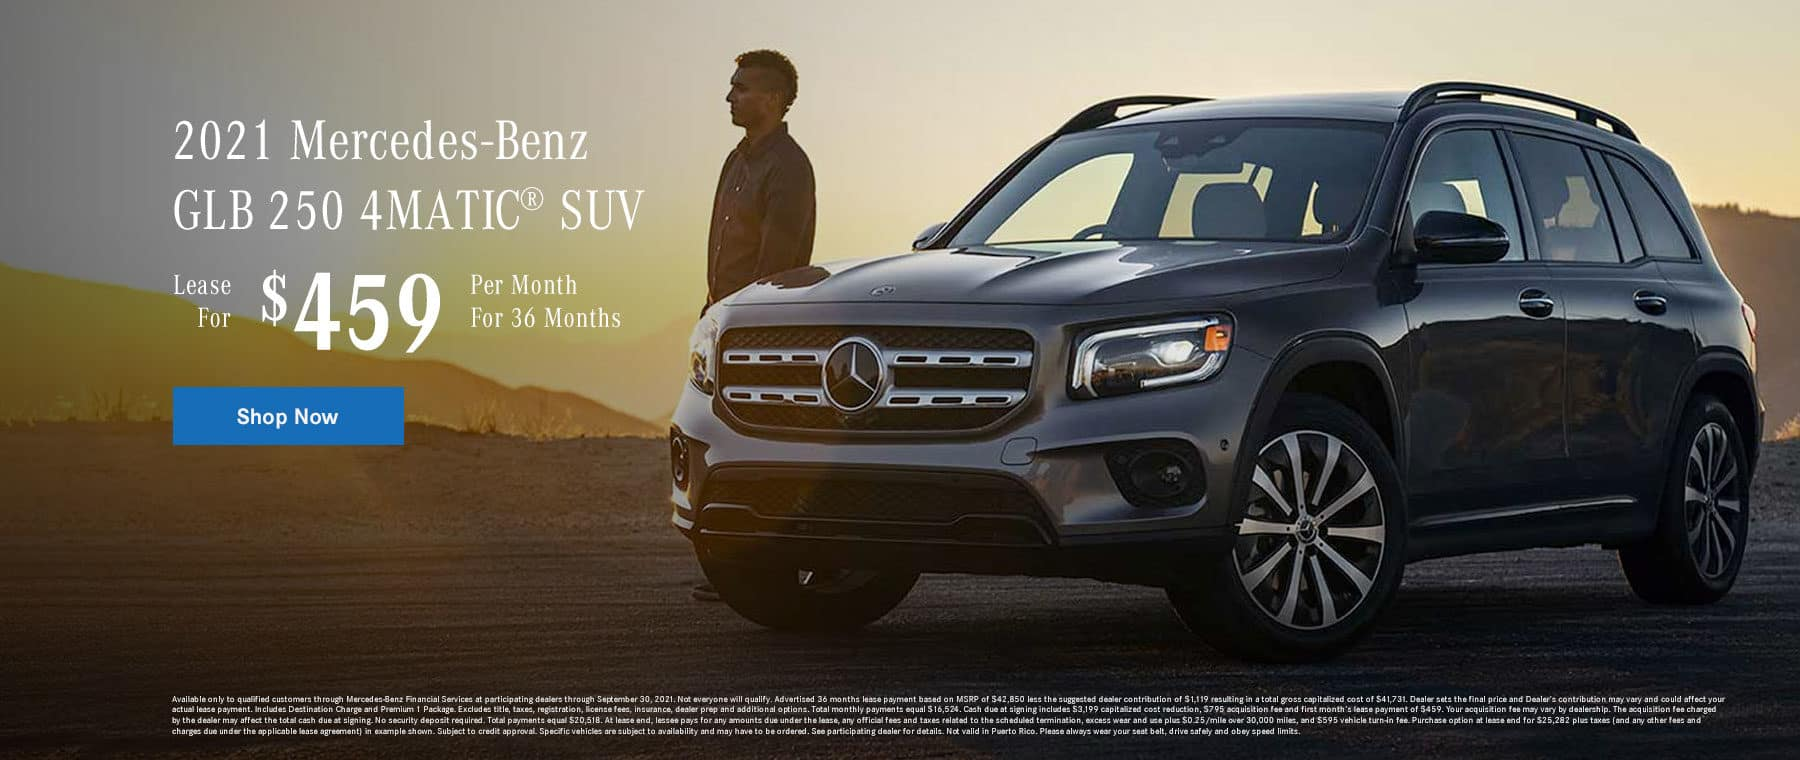 2021 Mercedes-Benz GLB 250 4MATIC® SUV Lease for $459 Per Month for 36 Months